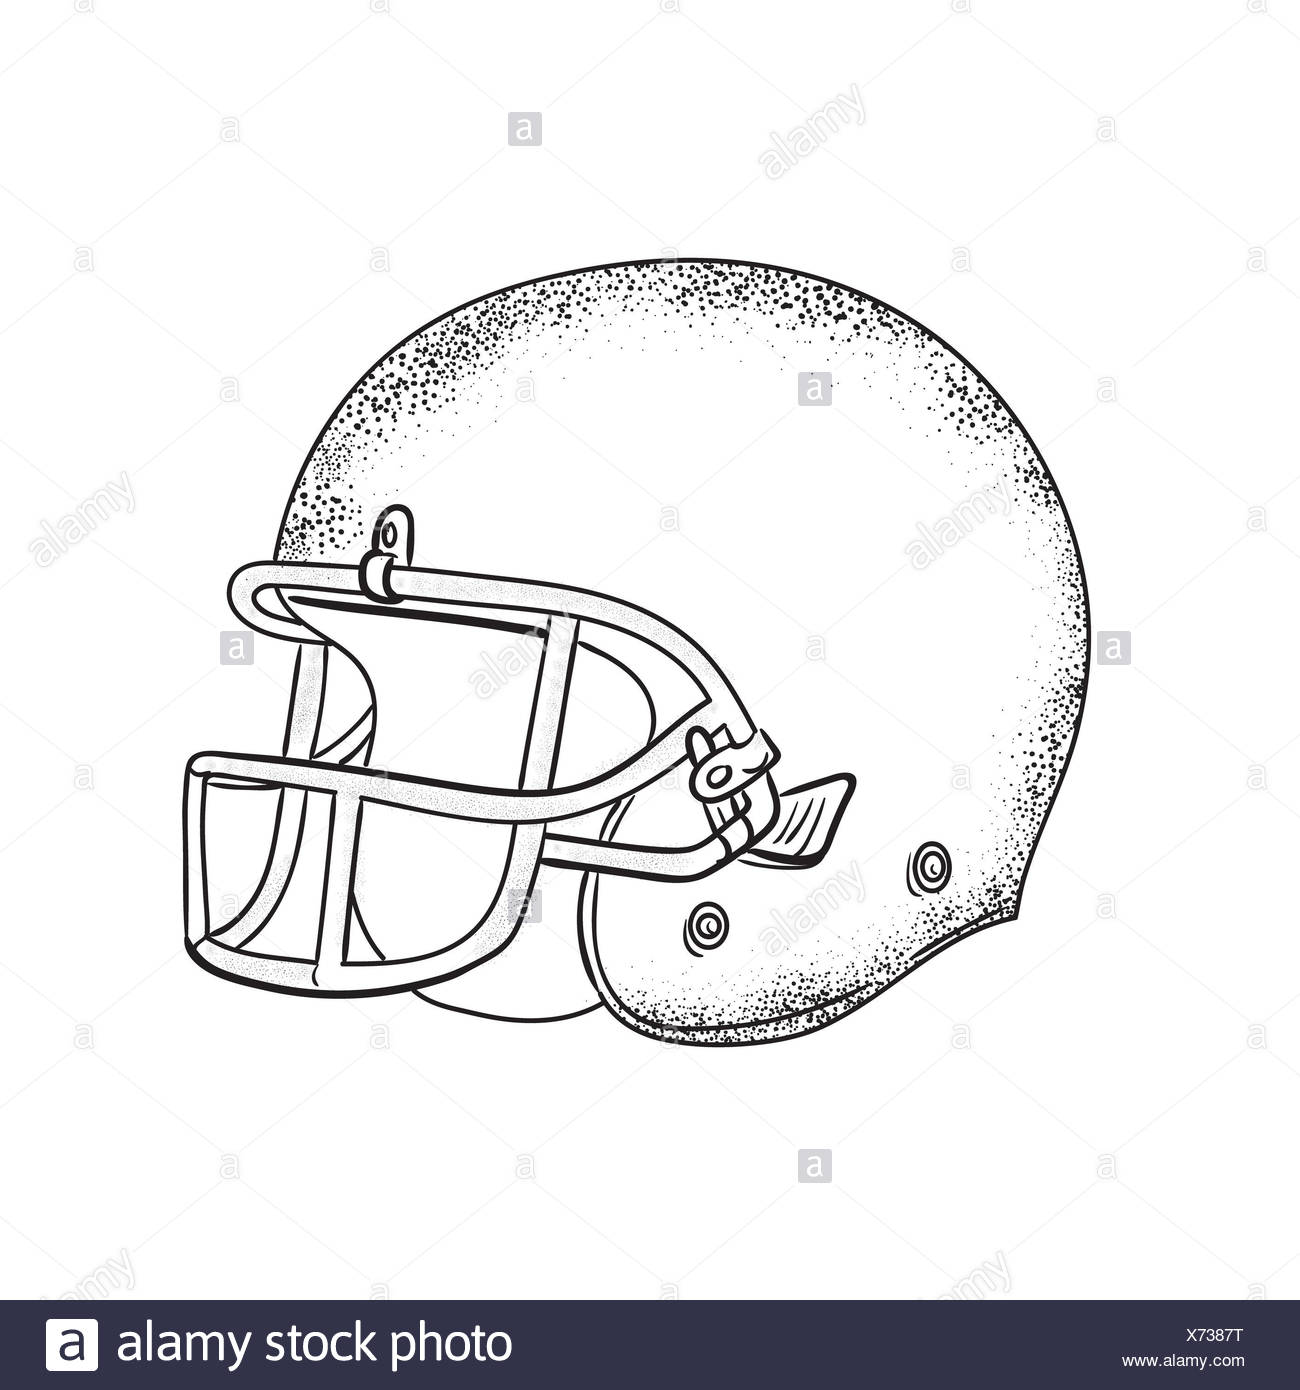 American Football Helmet Black And White Drawing Stock Photo